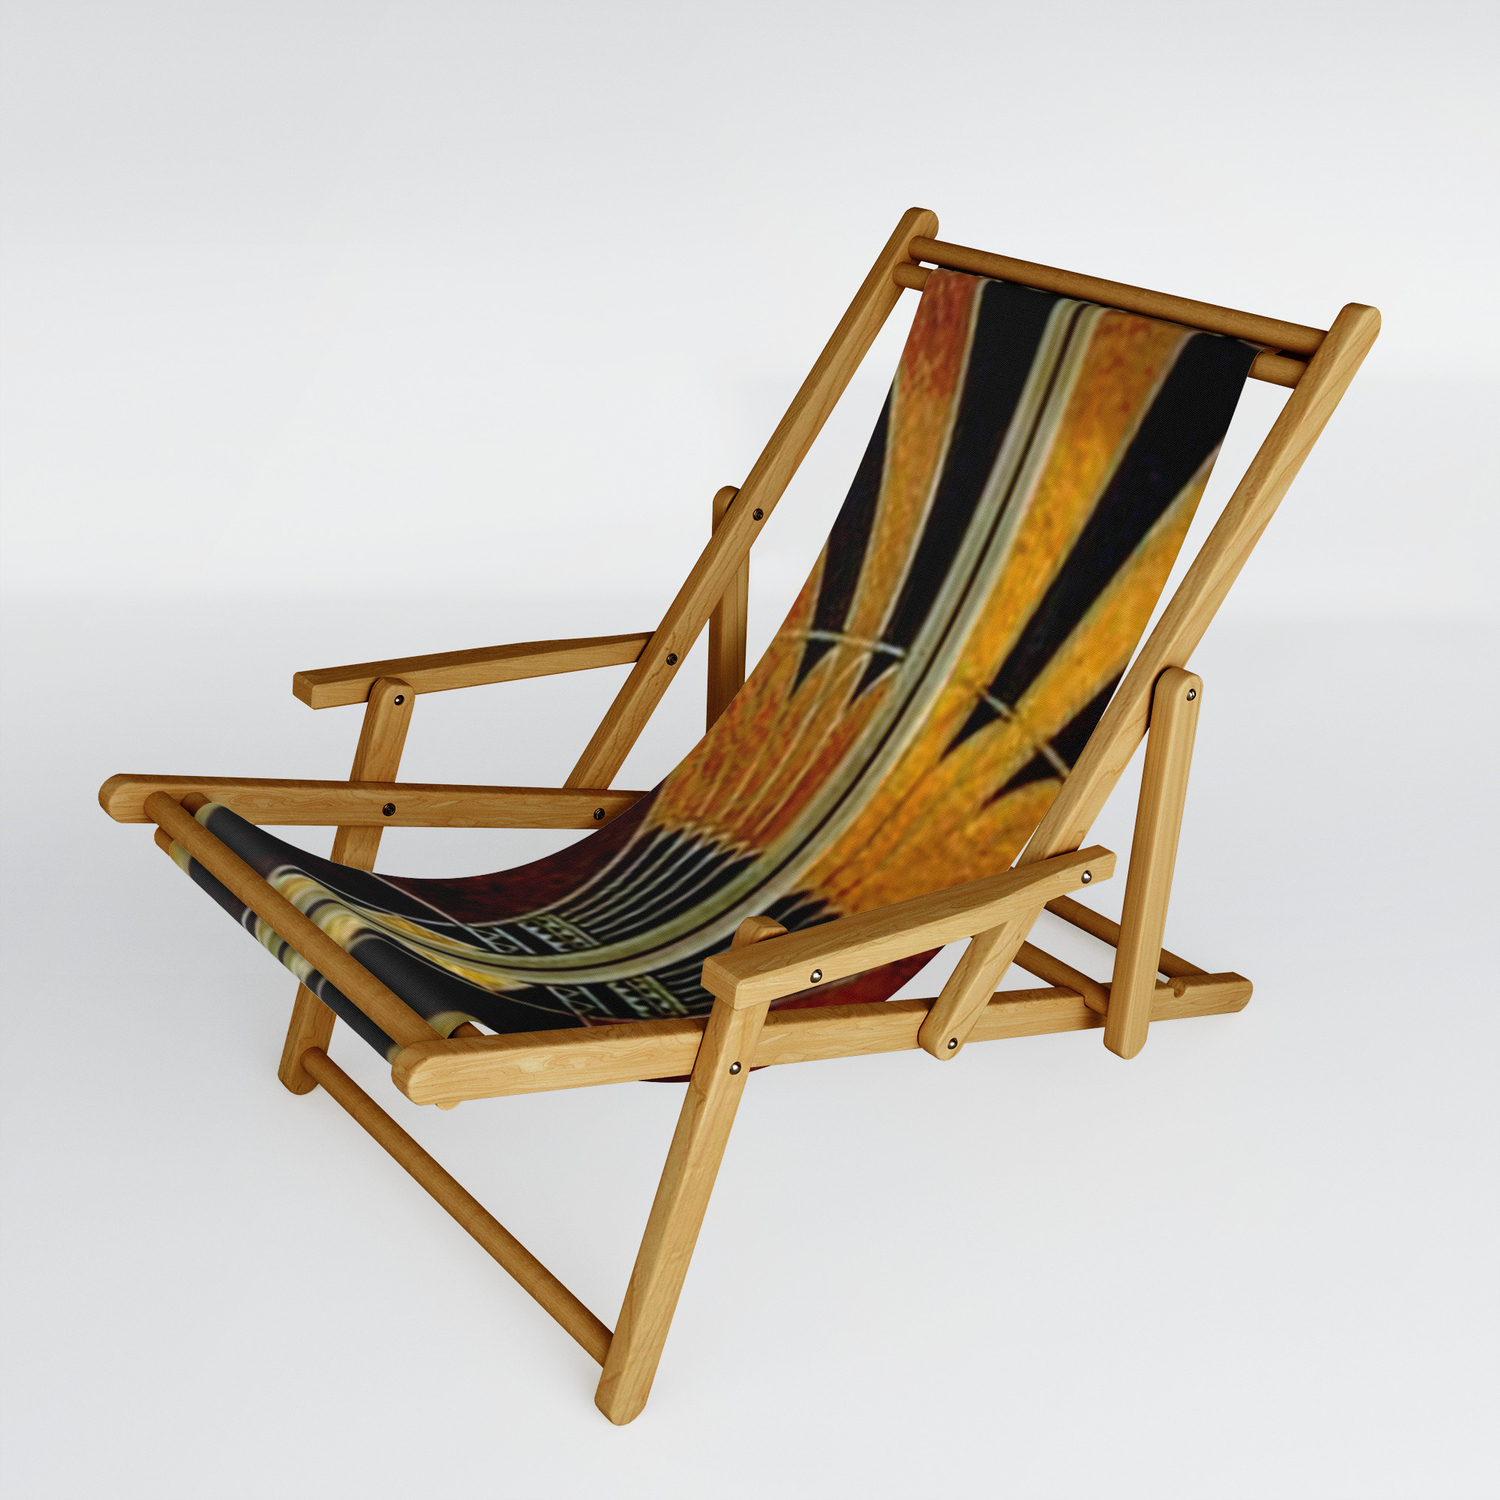 Outdoor Wood Sling Chairs With Regard To Famous Art Deco Wood Sling Chairhealinglove (View 19 of 25)